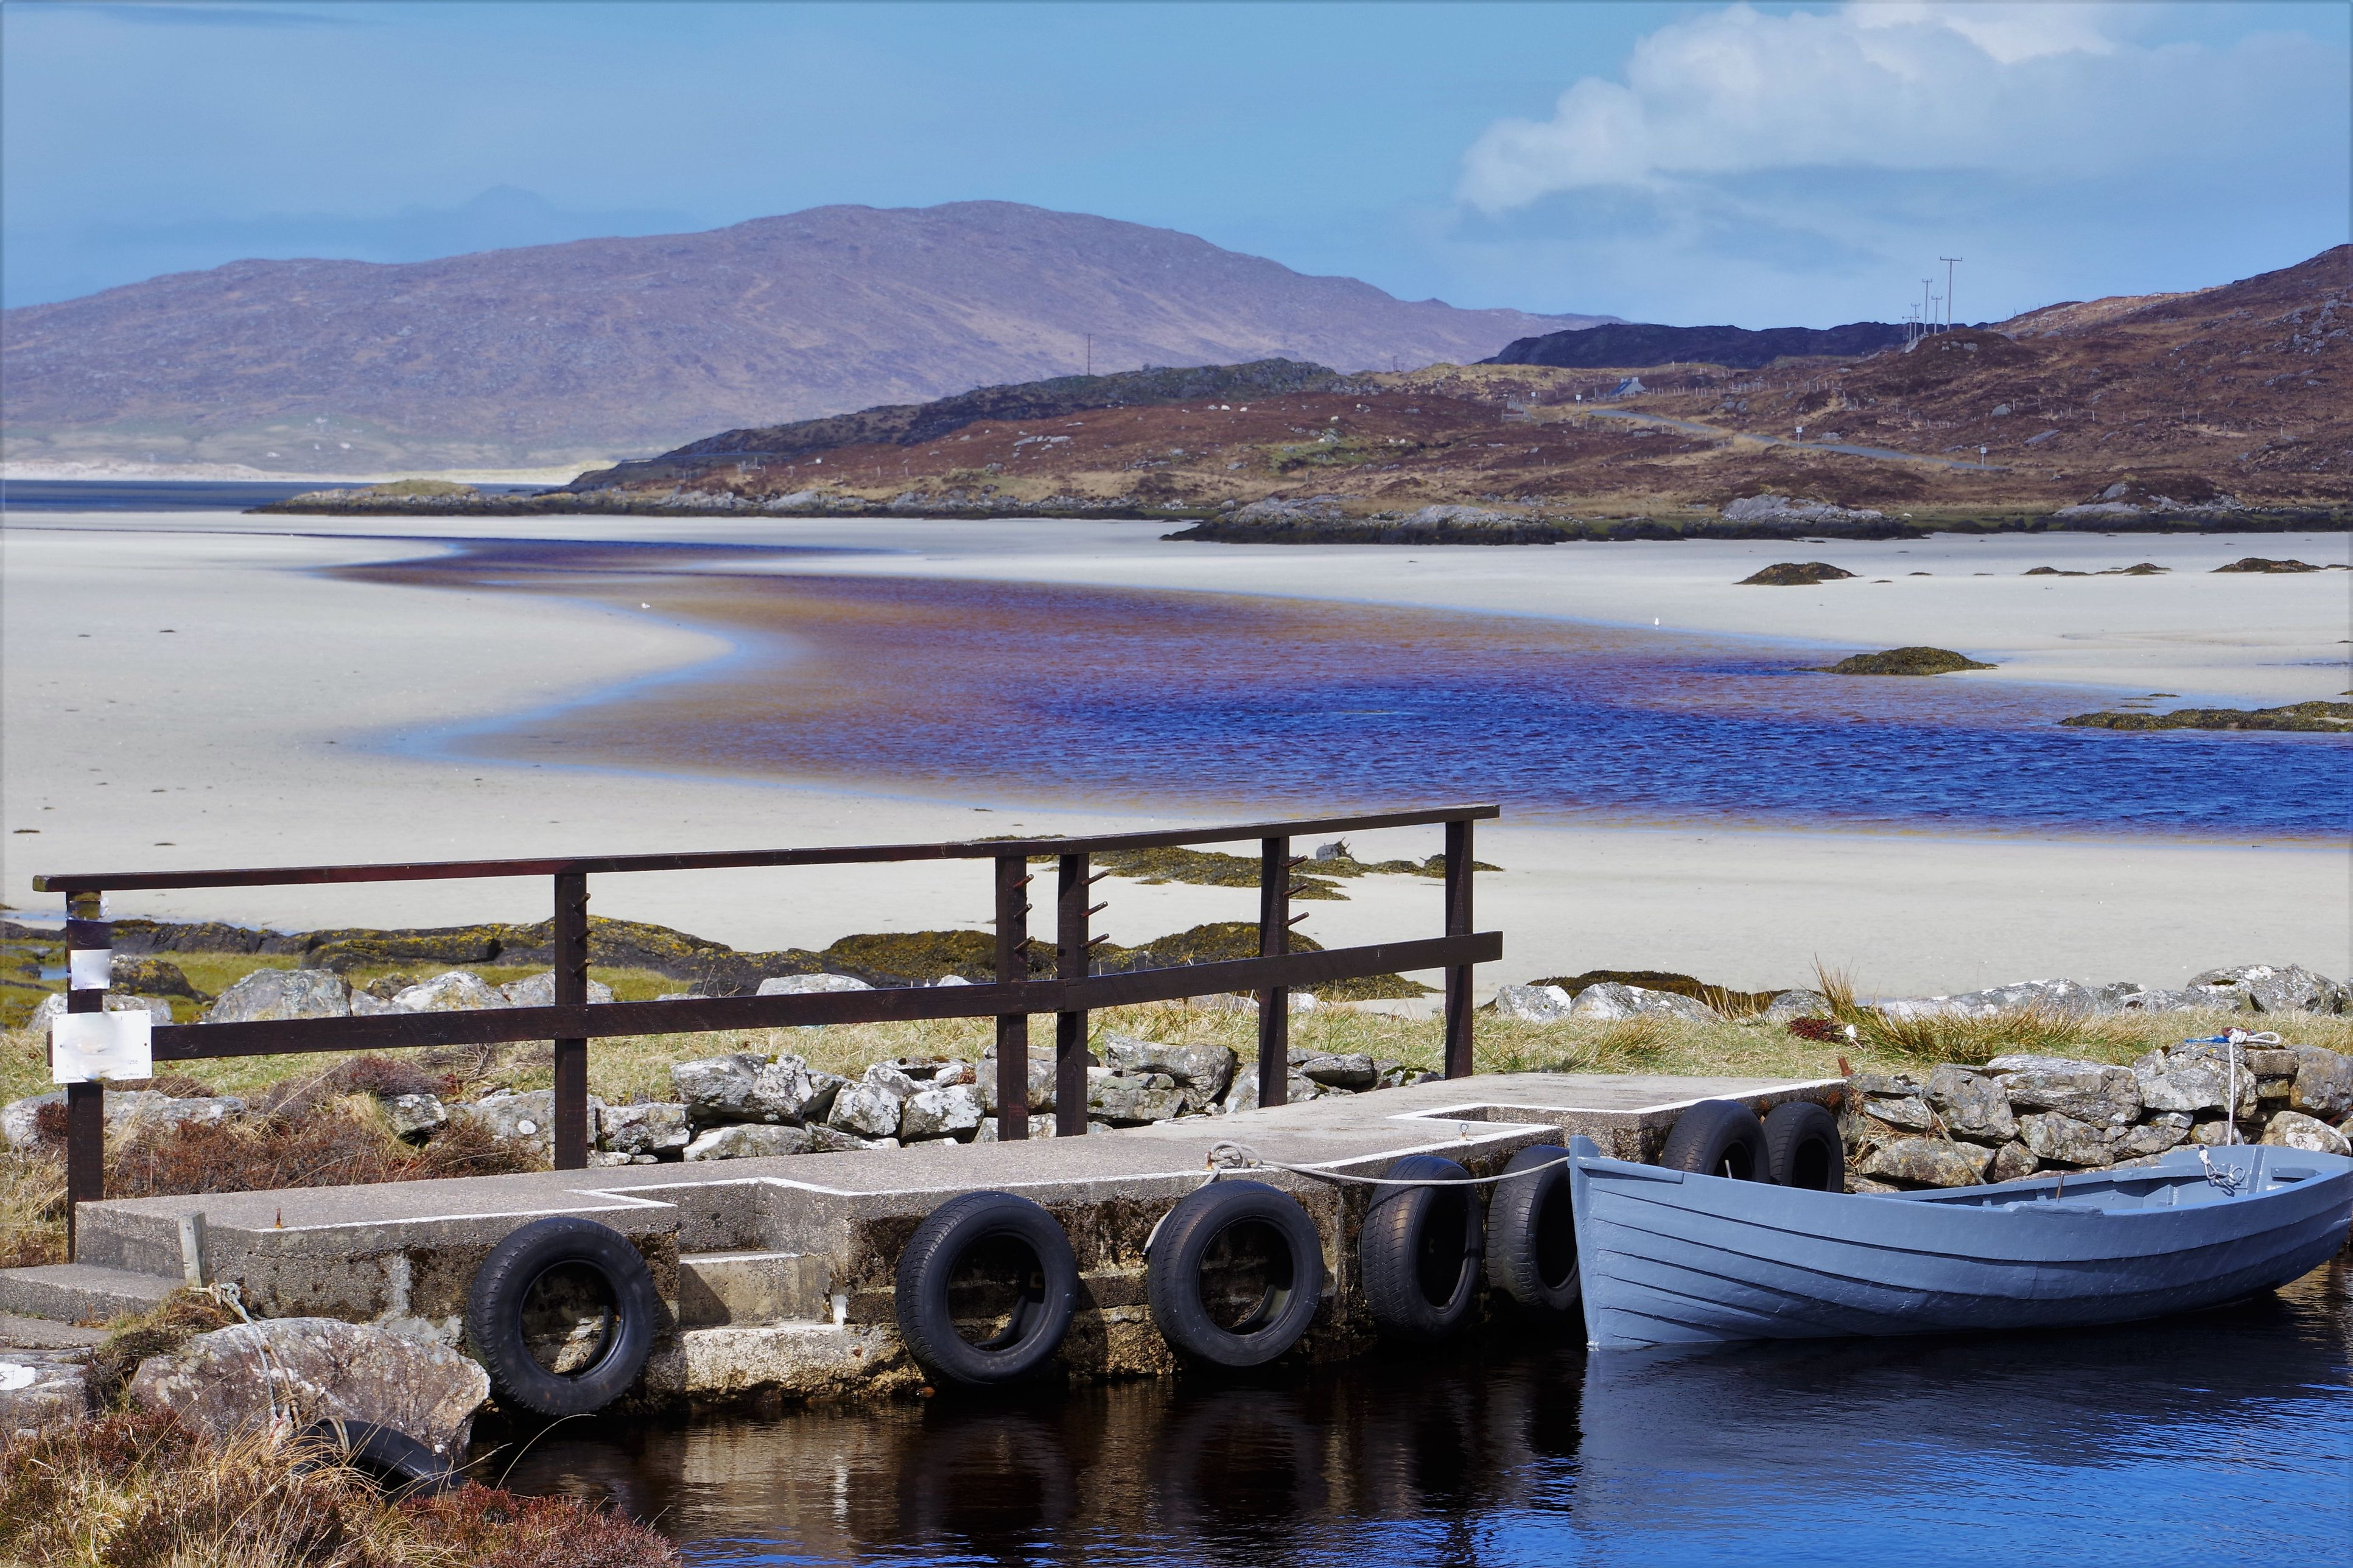 Tranquil Scenes and Spring Sunshine in Eilean Siar, Outer Hebrides, Scotland